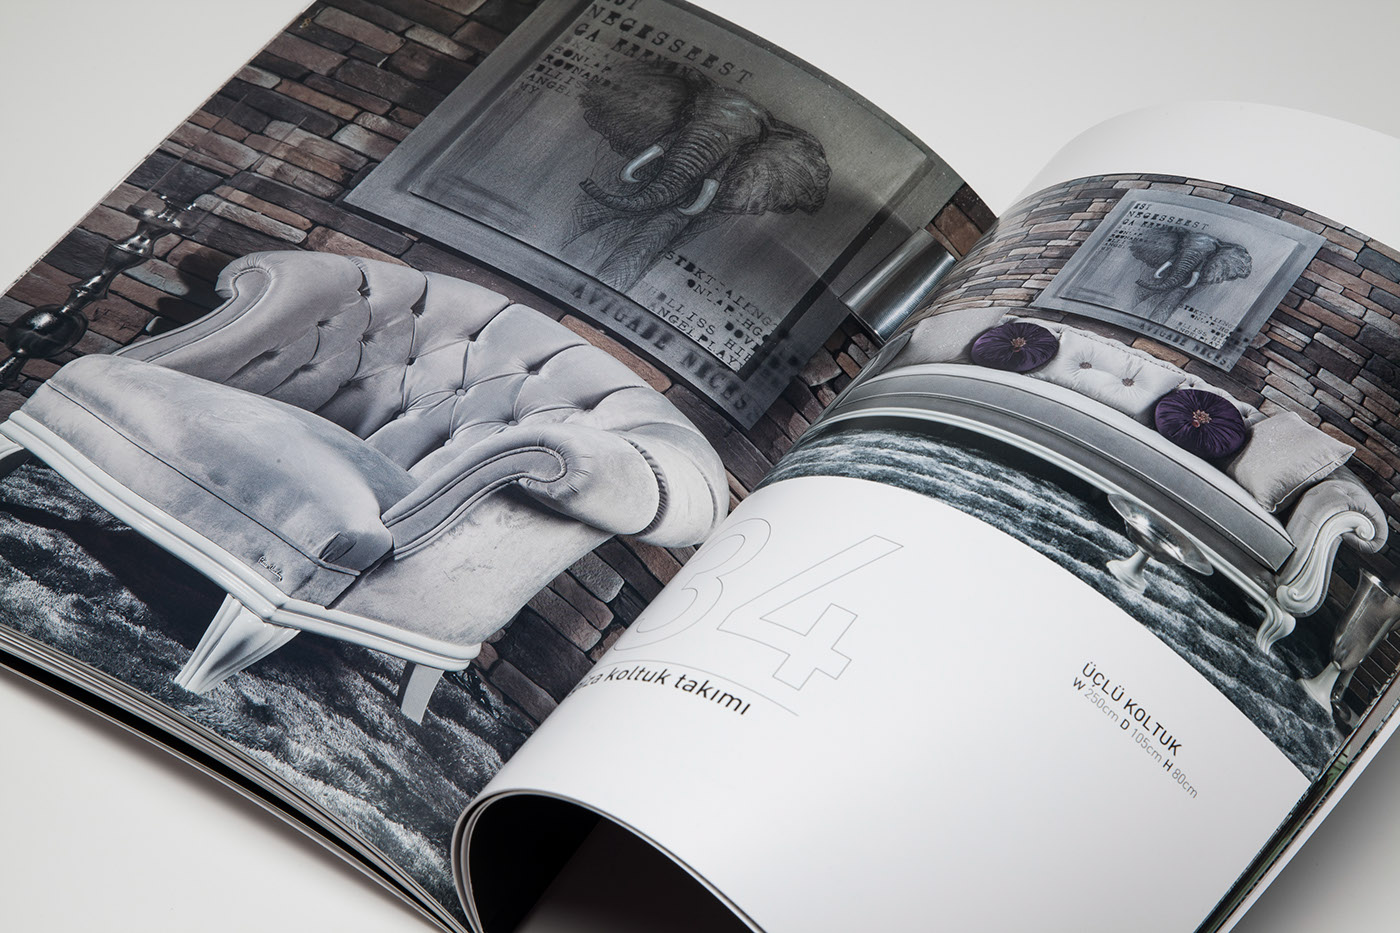 Pierre cardin mobilia group catalogue 2015 on behance for Mobilia group